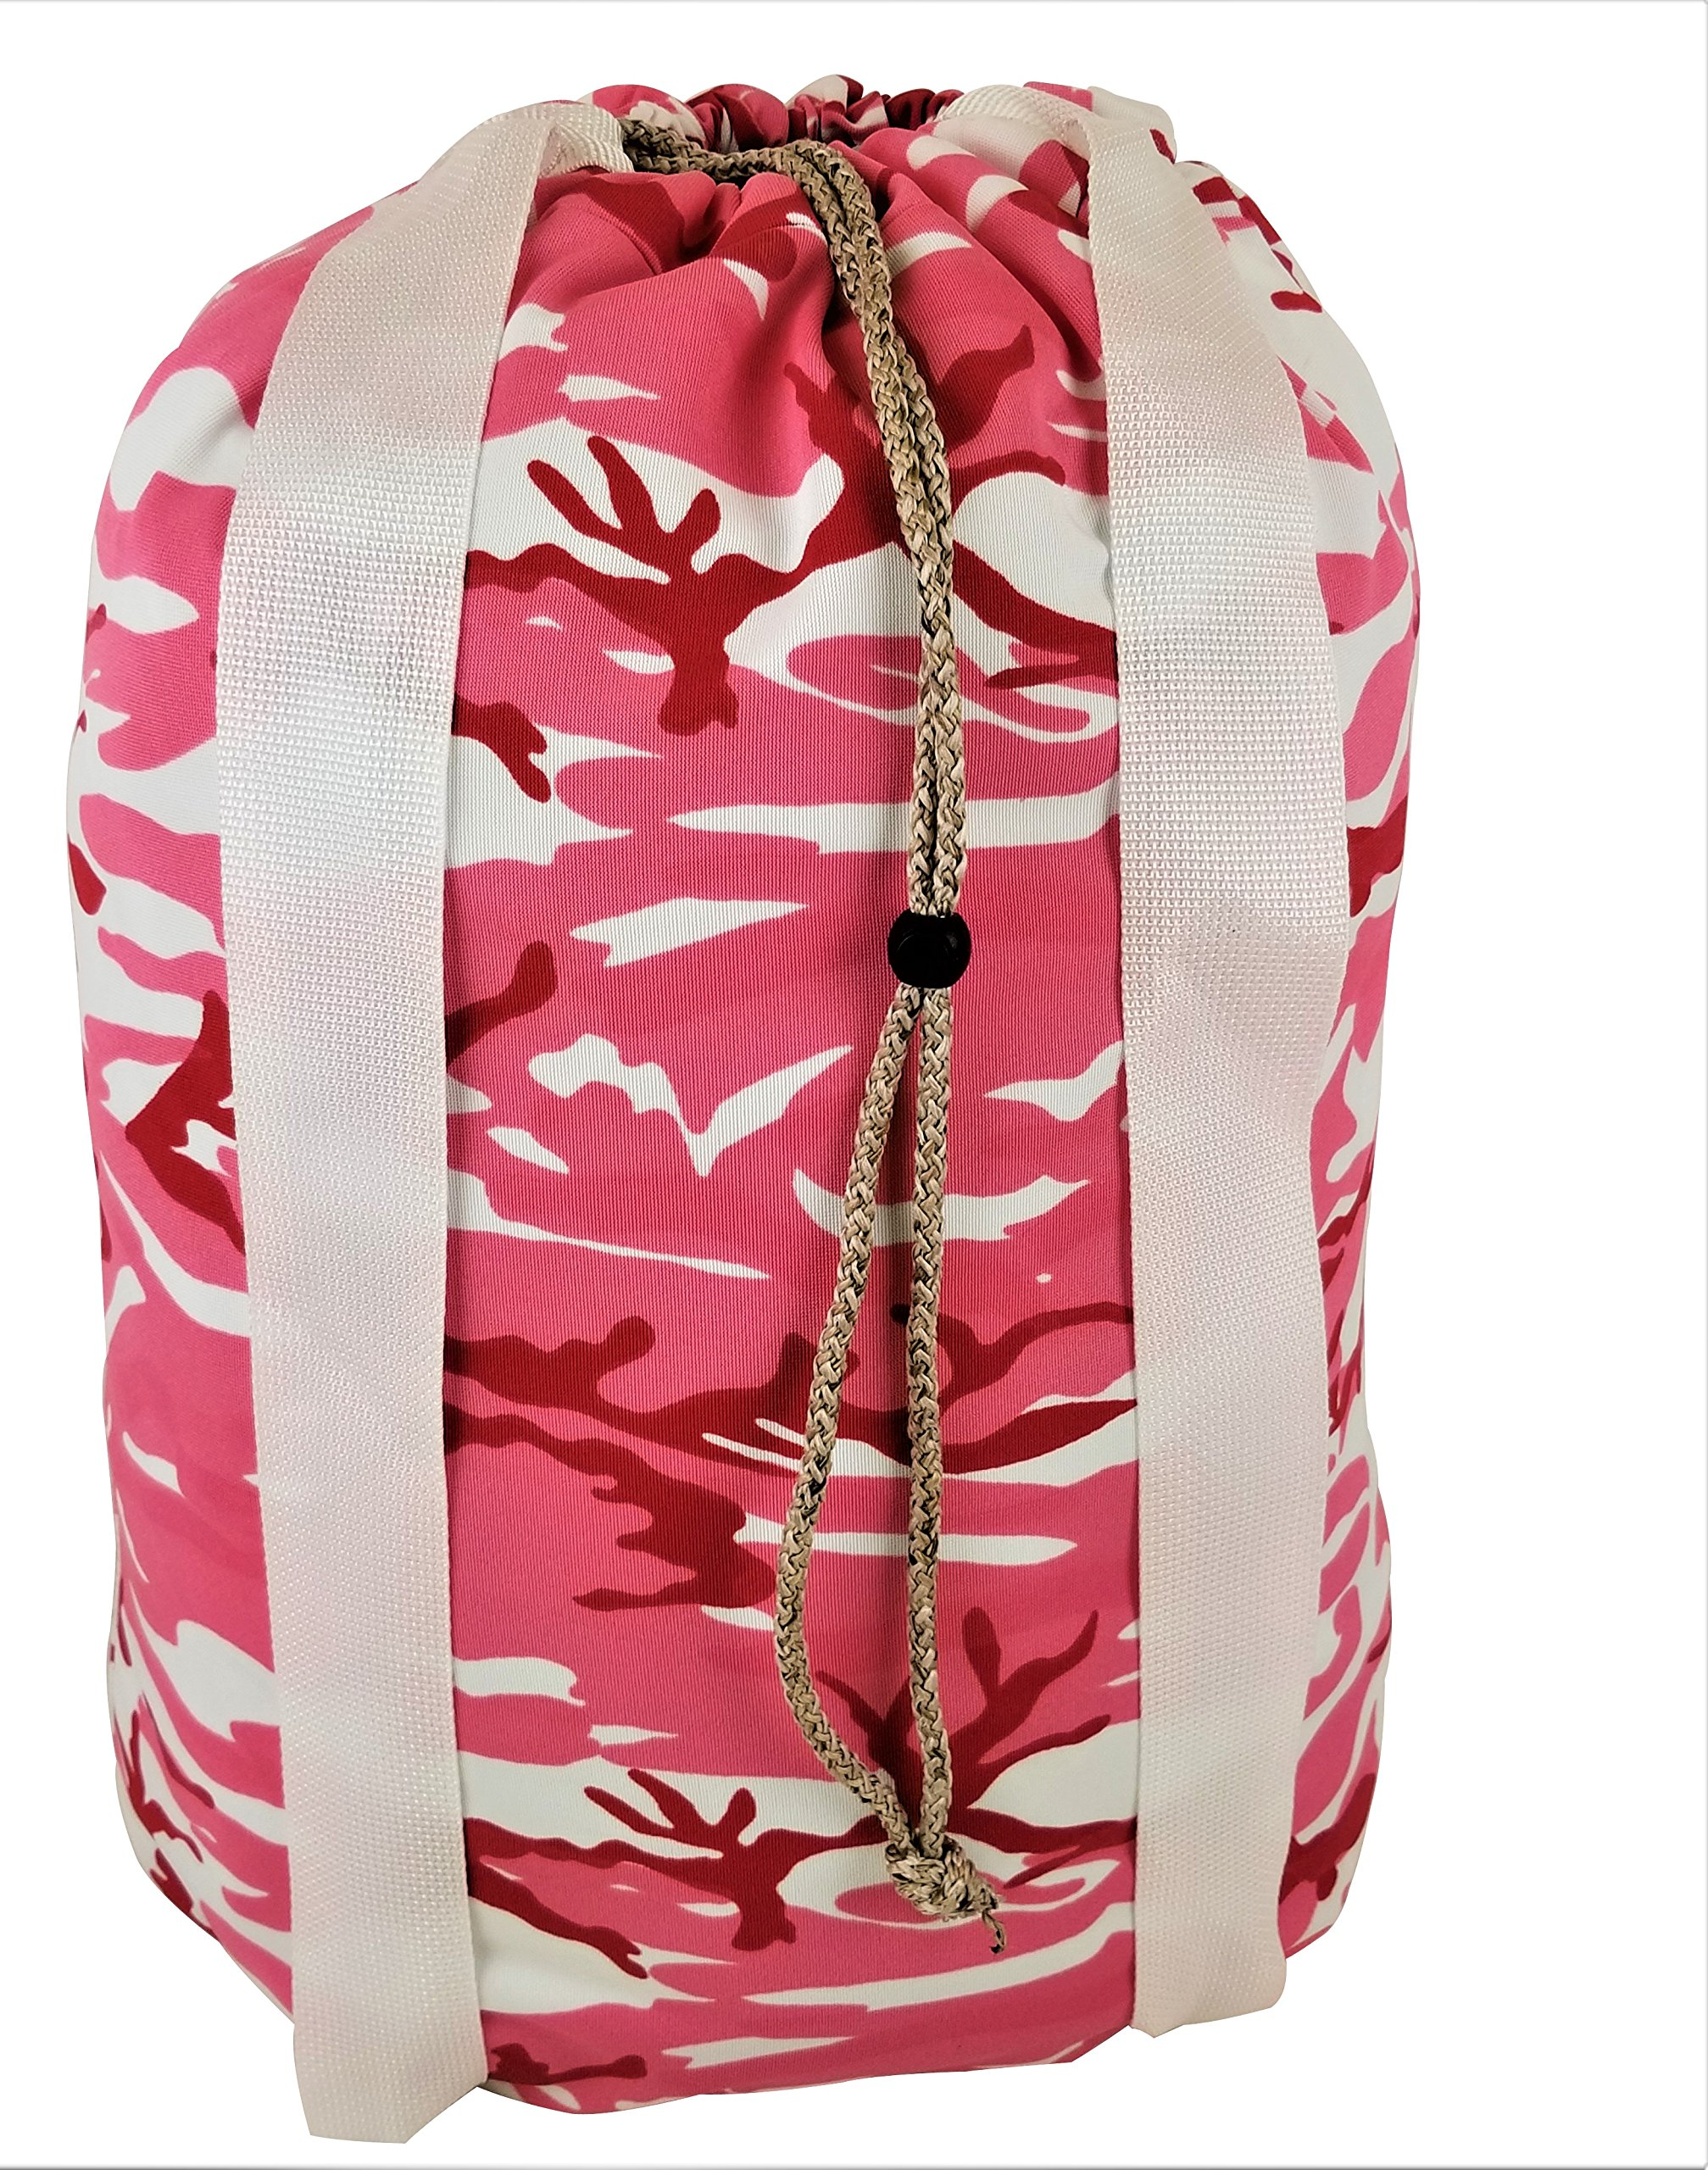 American Laundry Bags Laundry Backpack with Durable shoulder straps and cord, Heavy-Duty, Made In USA (camo-pink)